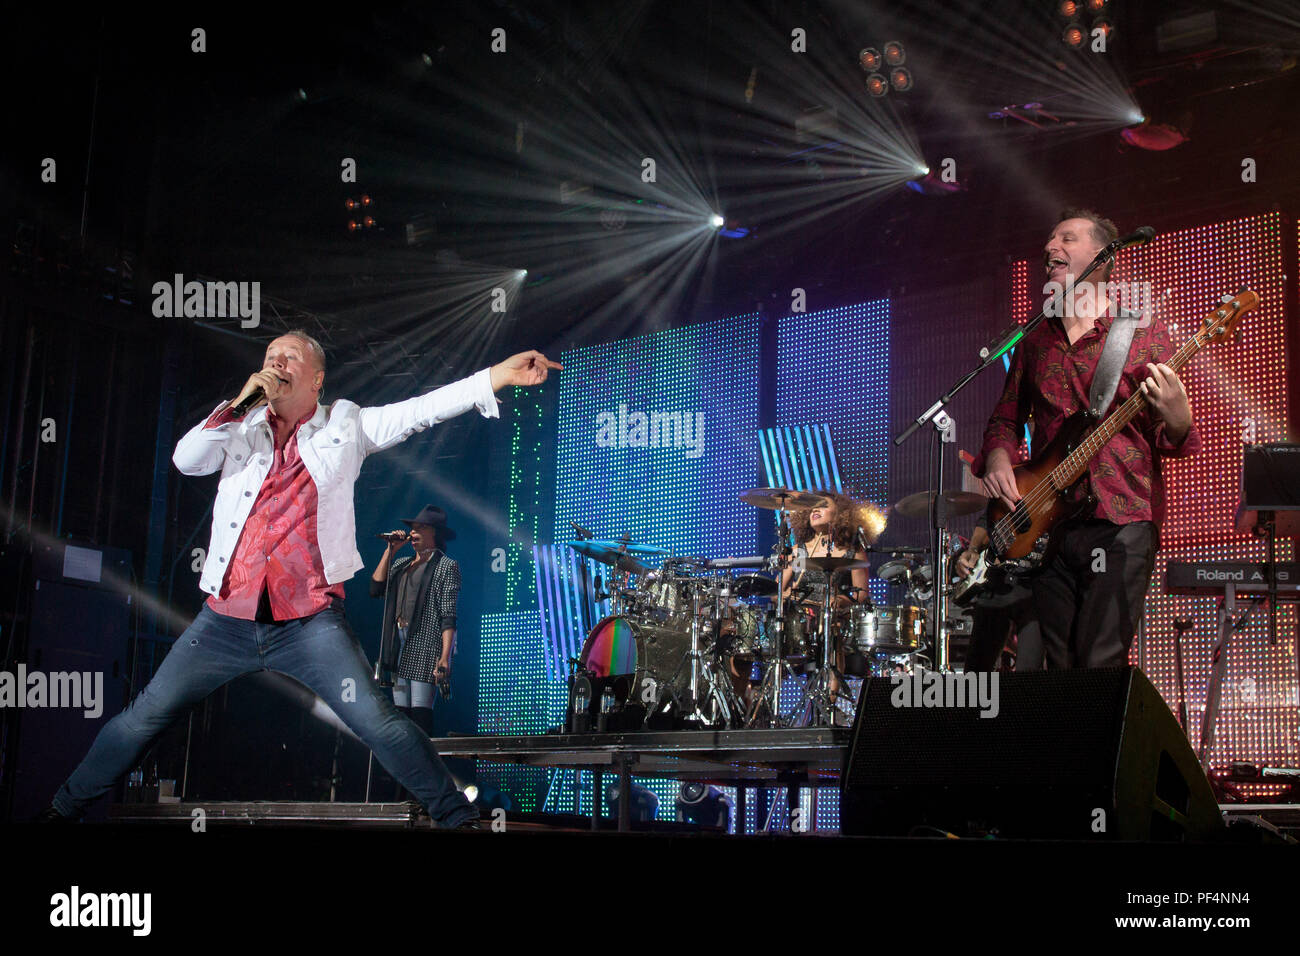 Coventry, UK. 18th October, 2018. Simple Minds Lead Singer Jim Kerr at Grandslam18 , Coventry Butts Park Arena Credit: Kev Wise Images/Alamy Live News - Stock Image